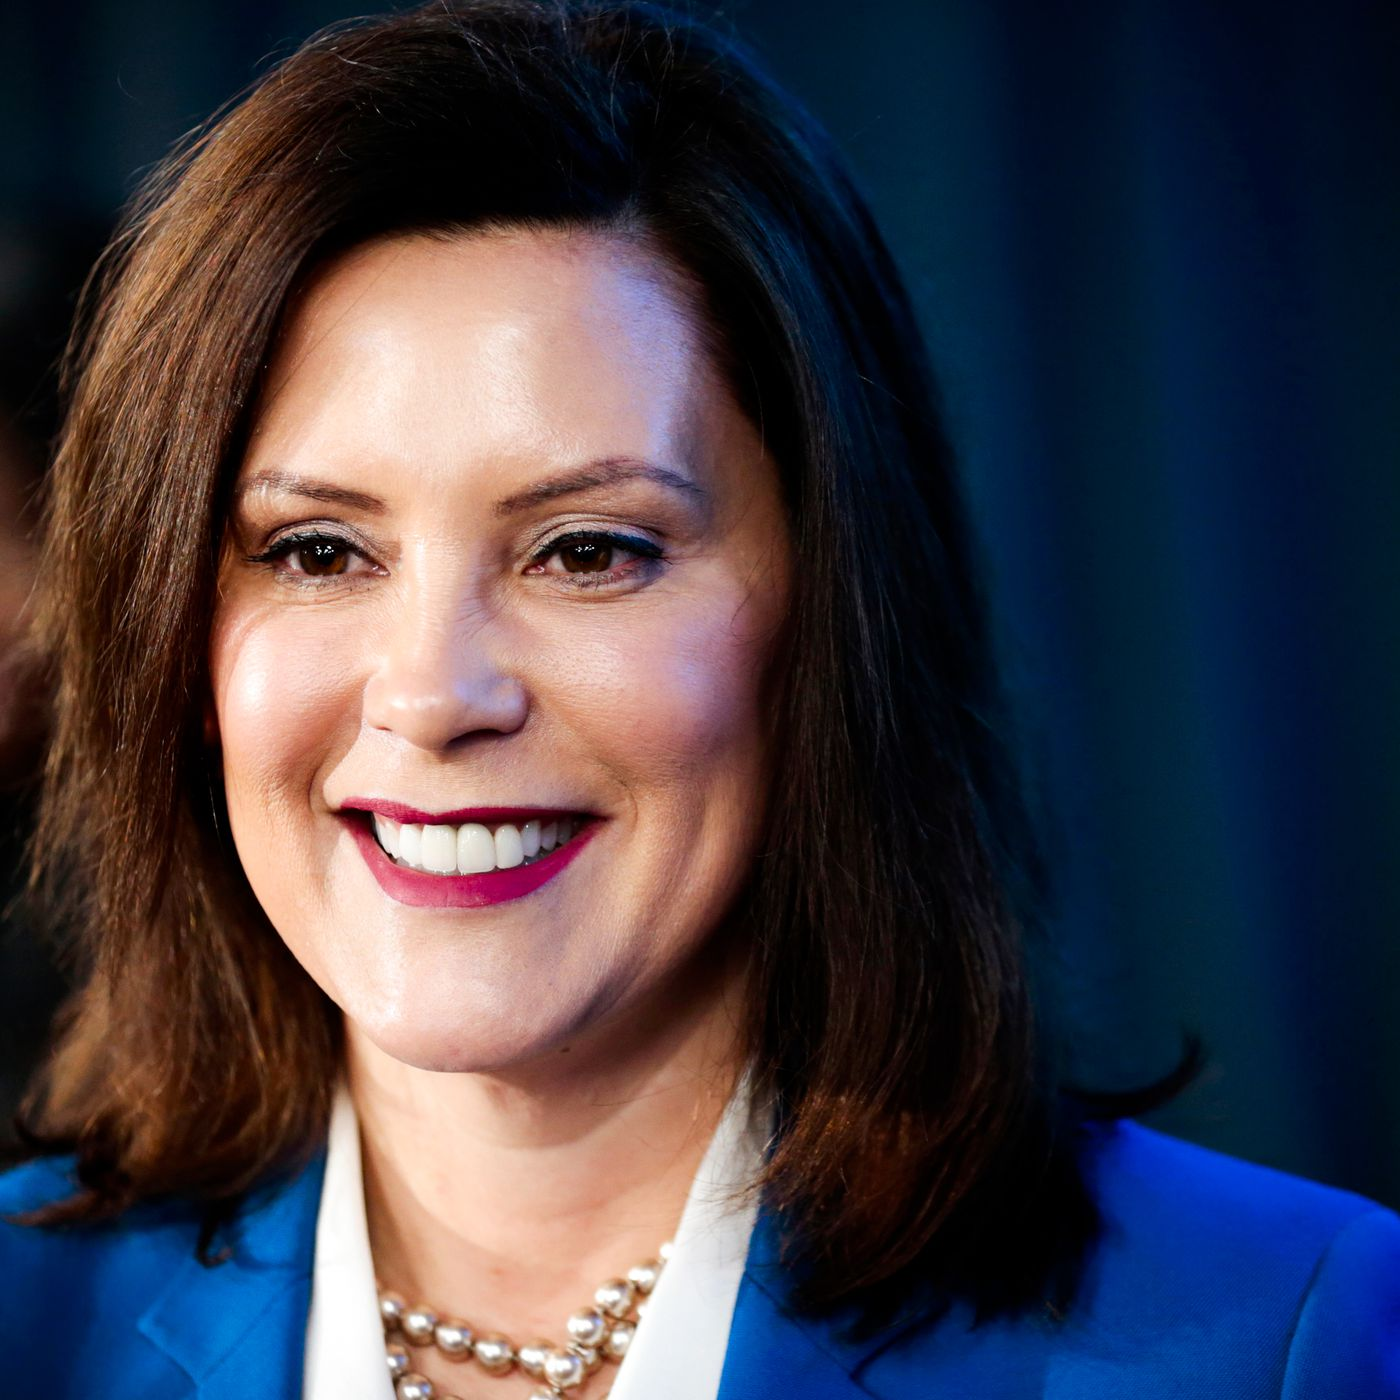 State Of The Union 2020 Gretchen Whitmer S Smart Response Highlights A Big Problem For Democrats Vox